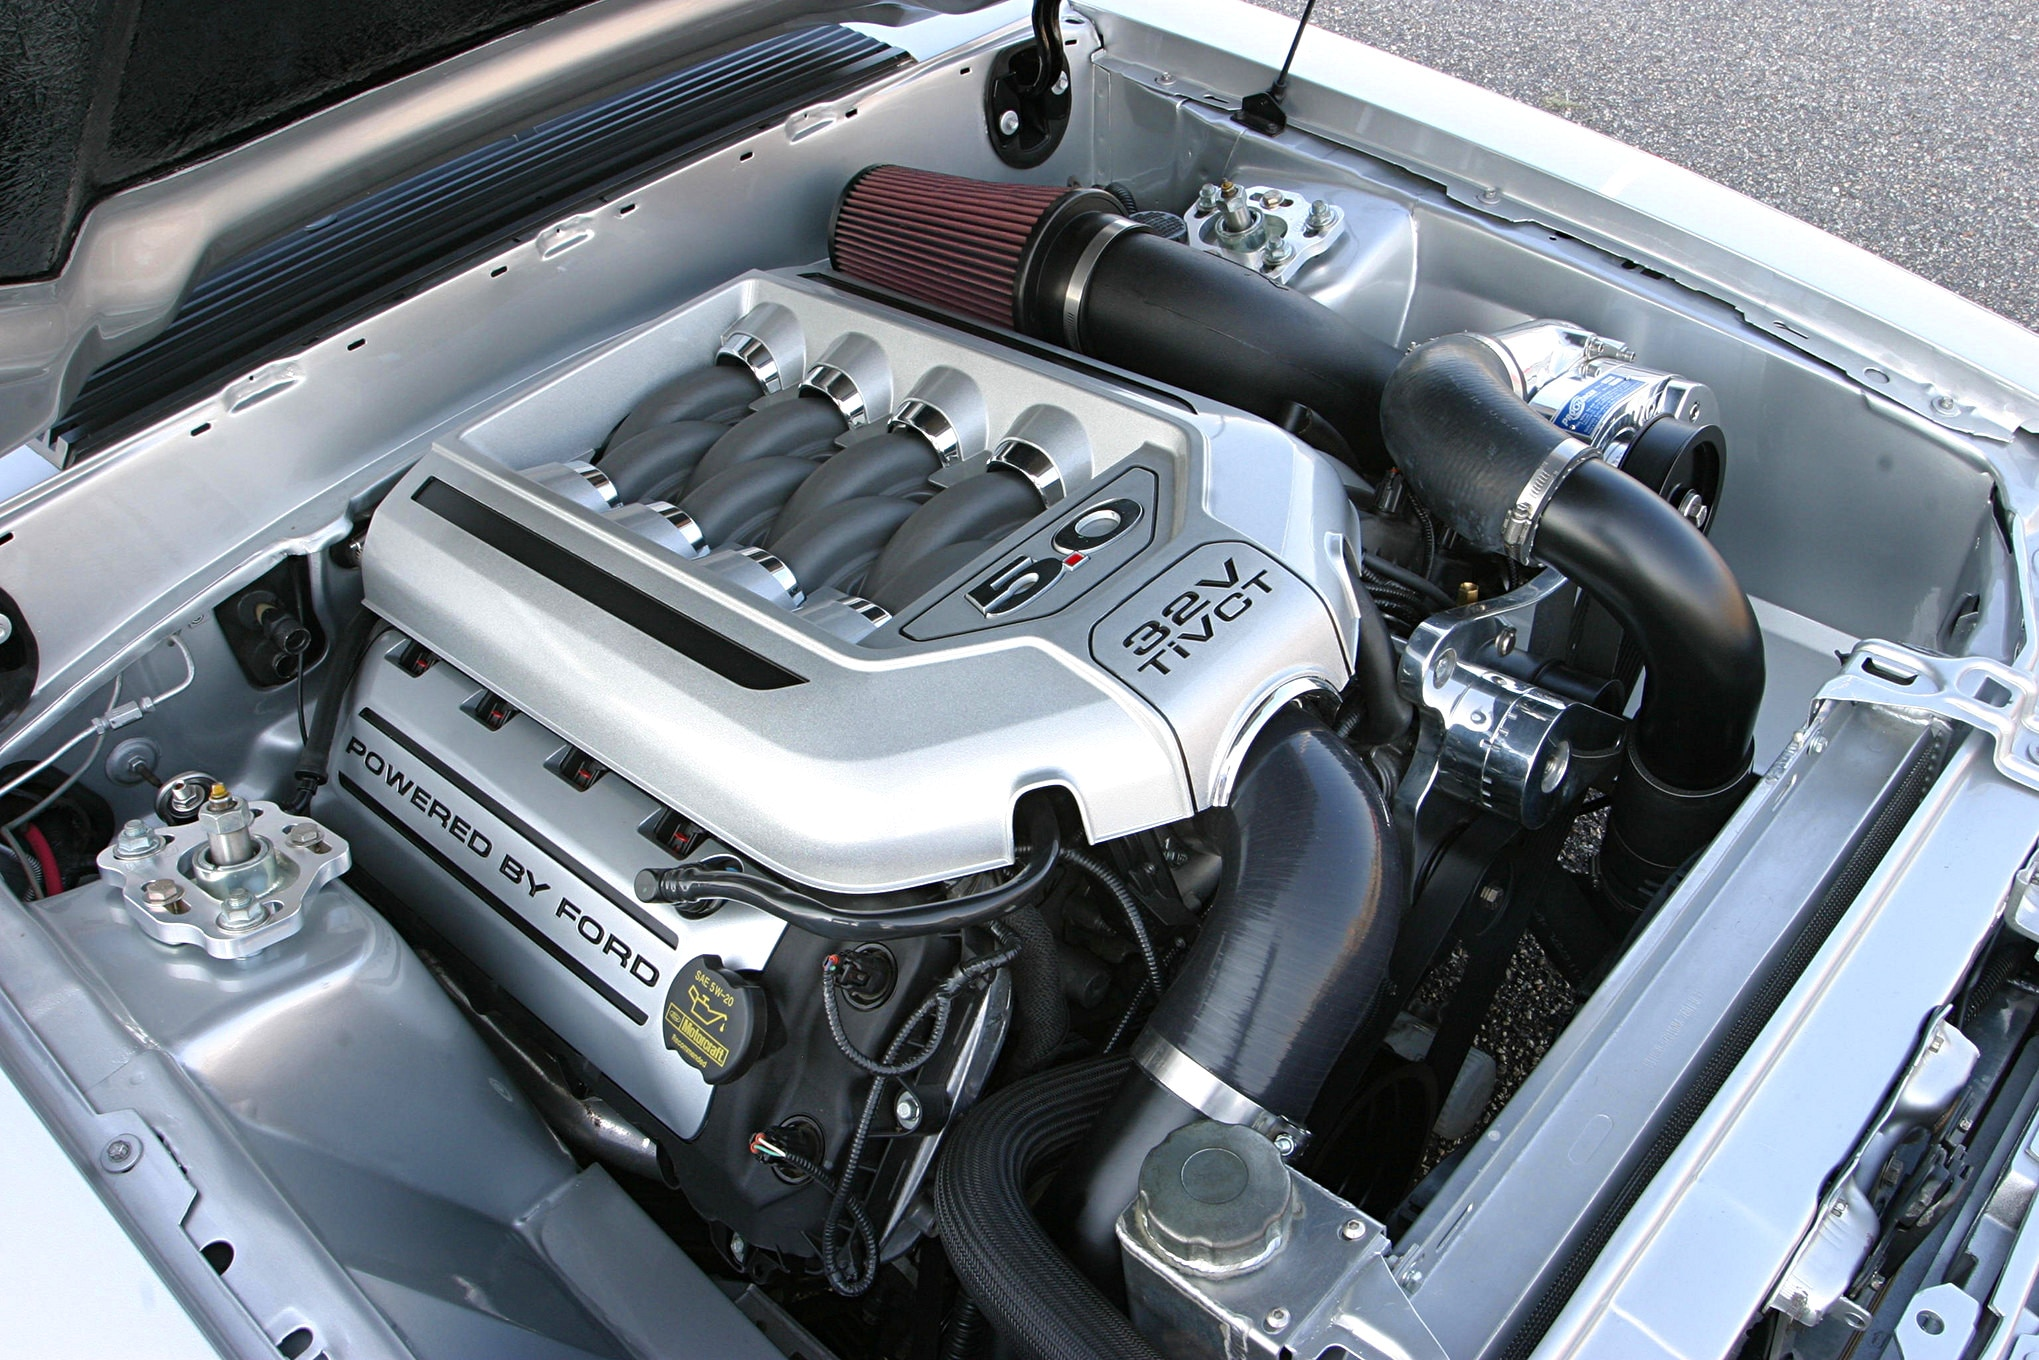 1991 Ford Mustang Lx Fox Body Engine Bay